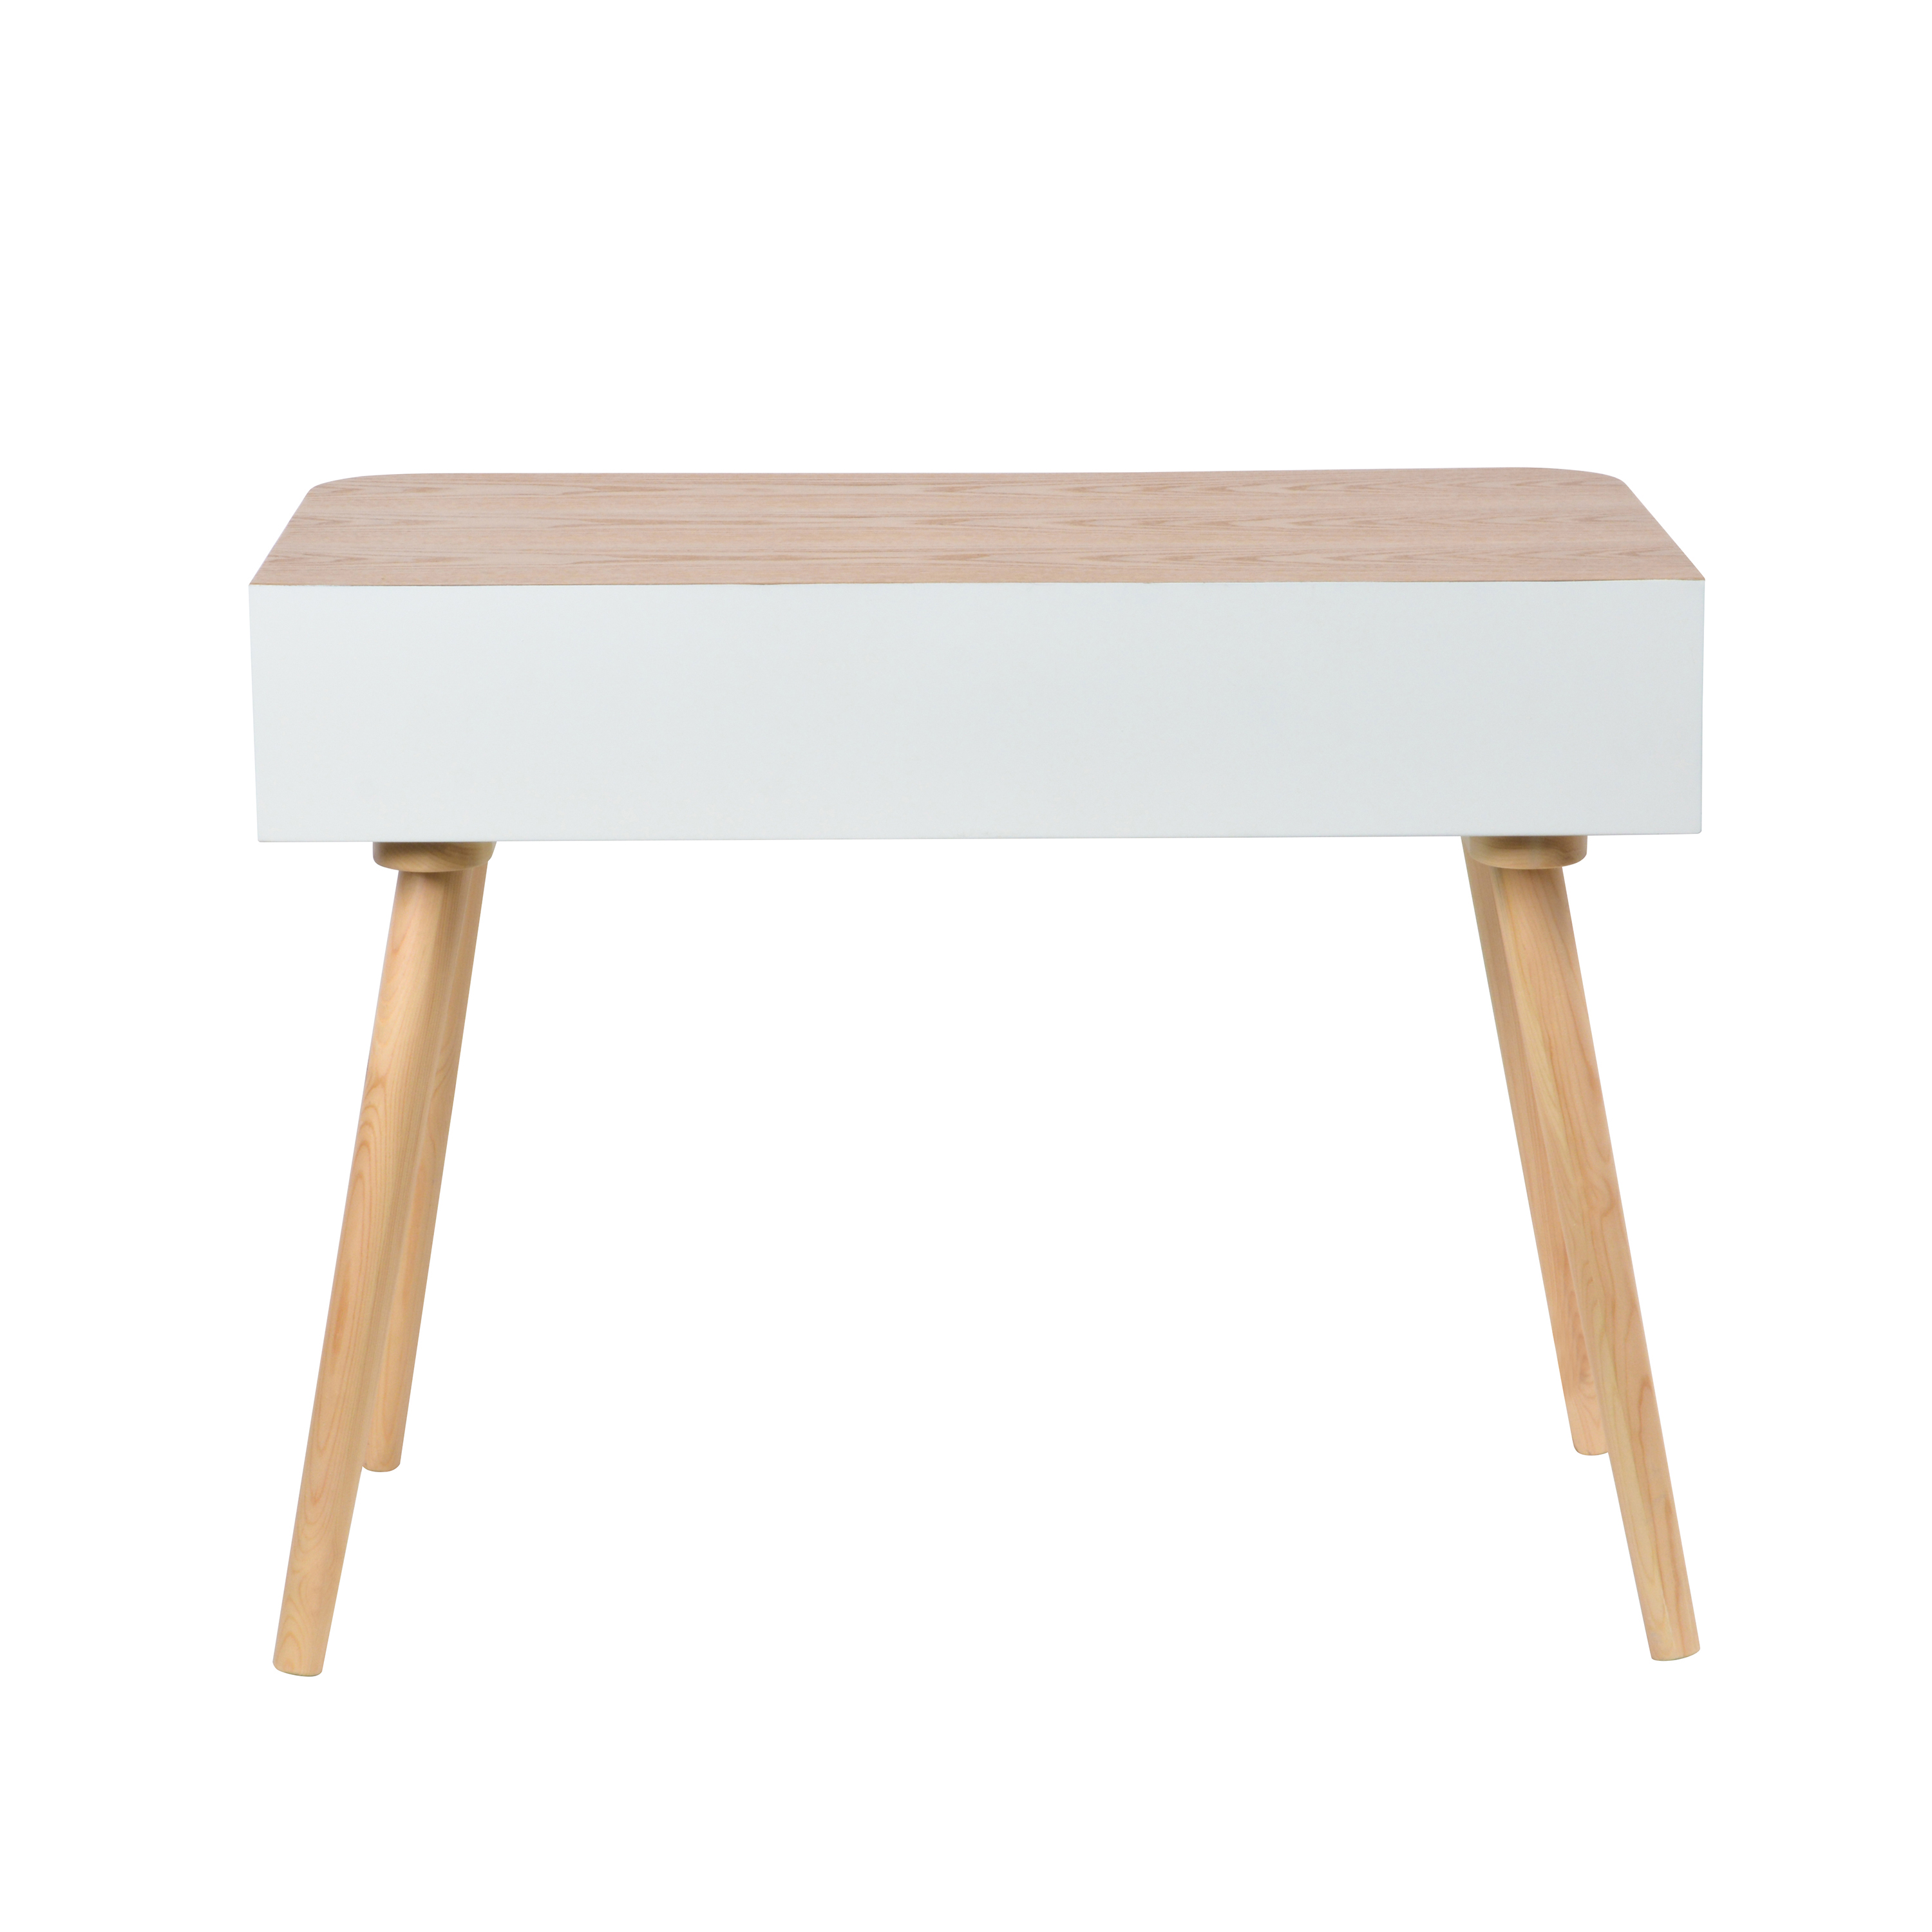 Goedkope Sidetable Wit.Sidetable Marco Wit